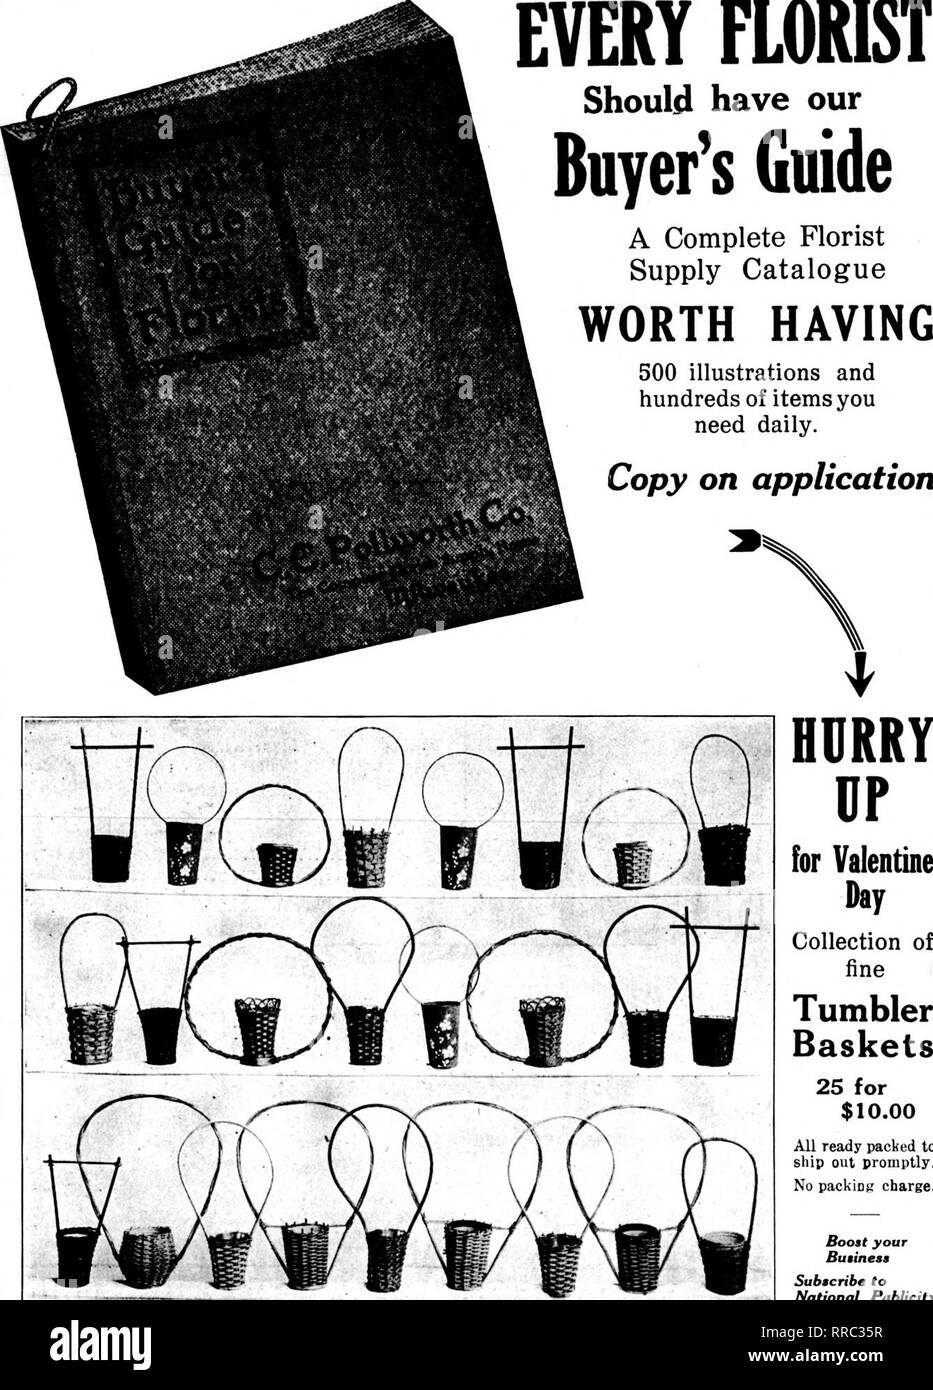 Florists Review Microform Floriculture 1 Pebruaky 2 1922 The